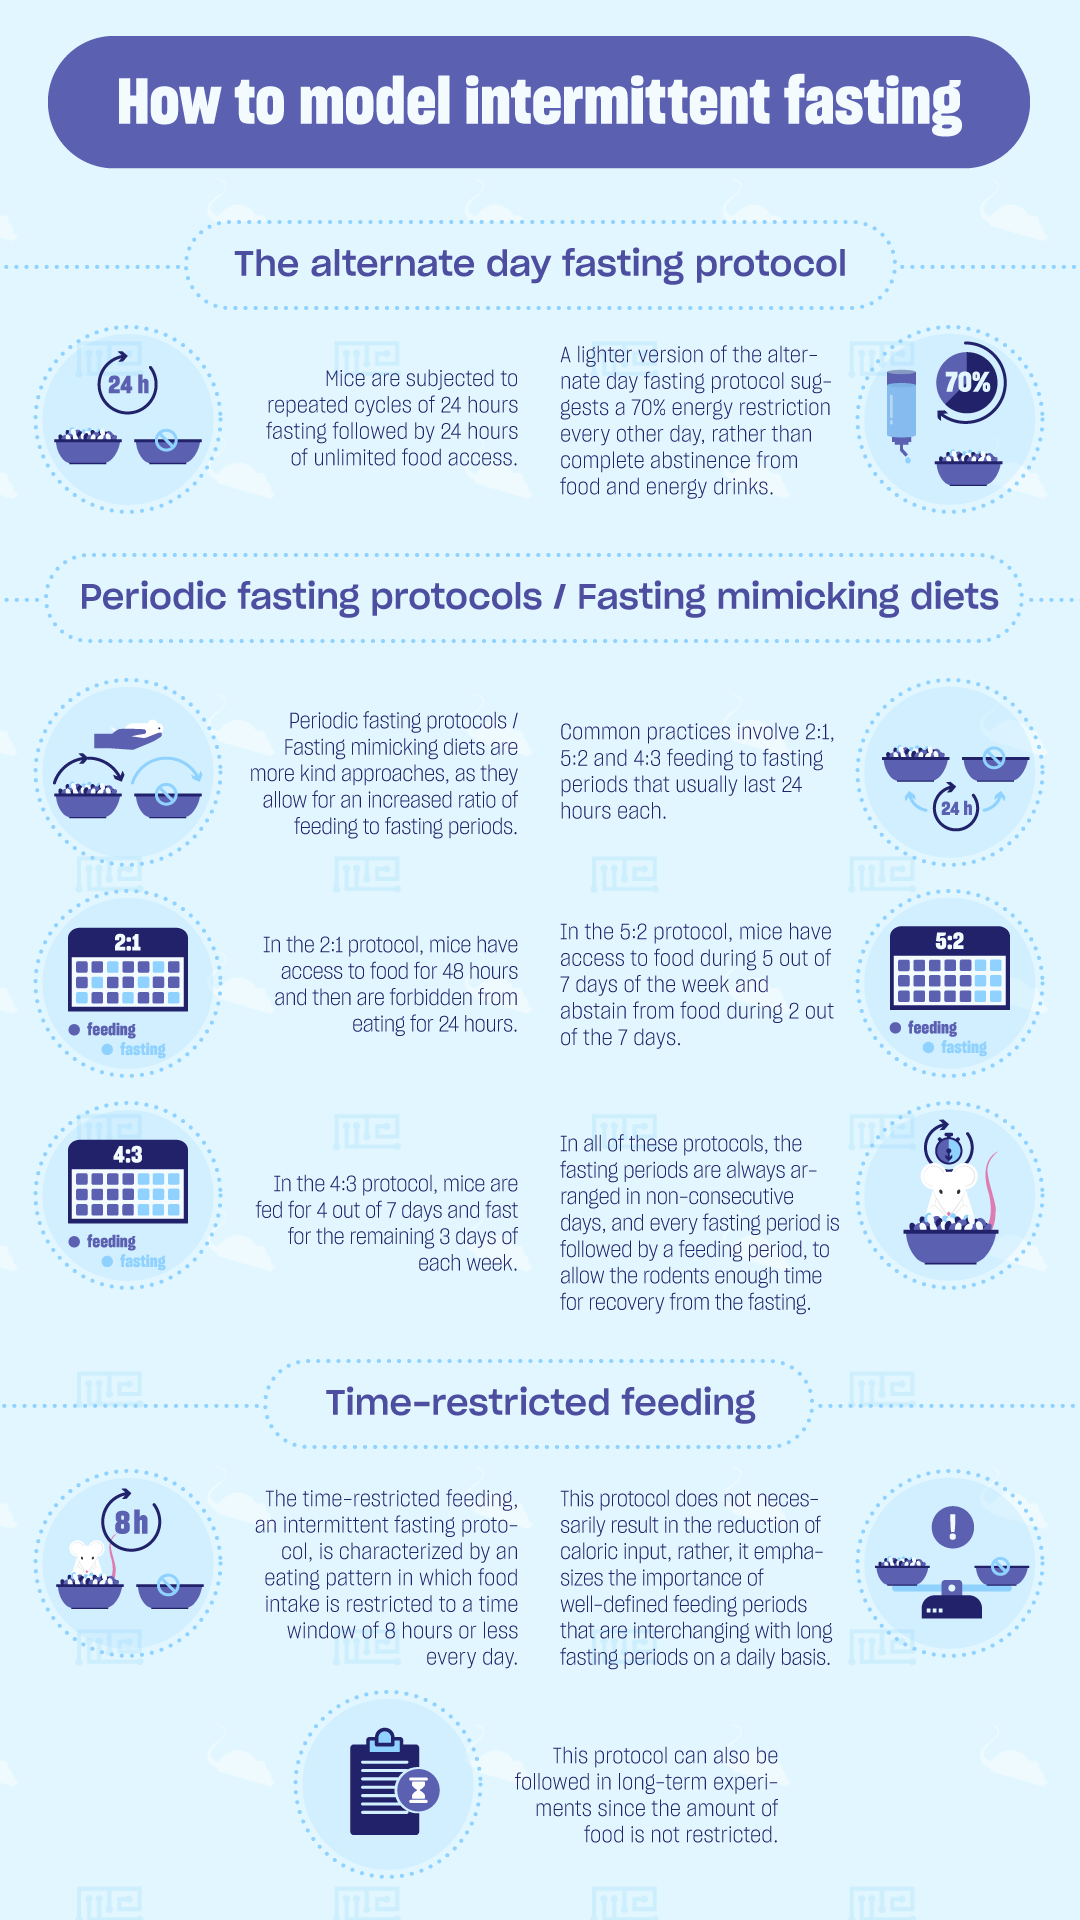 how to model intermittent fasting